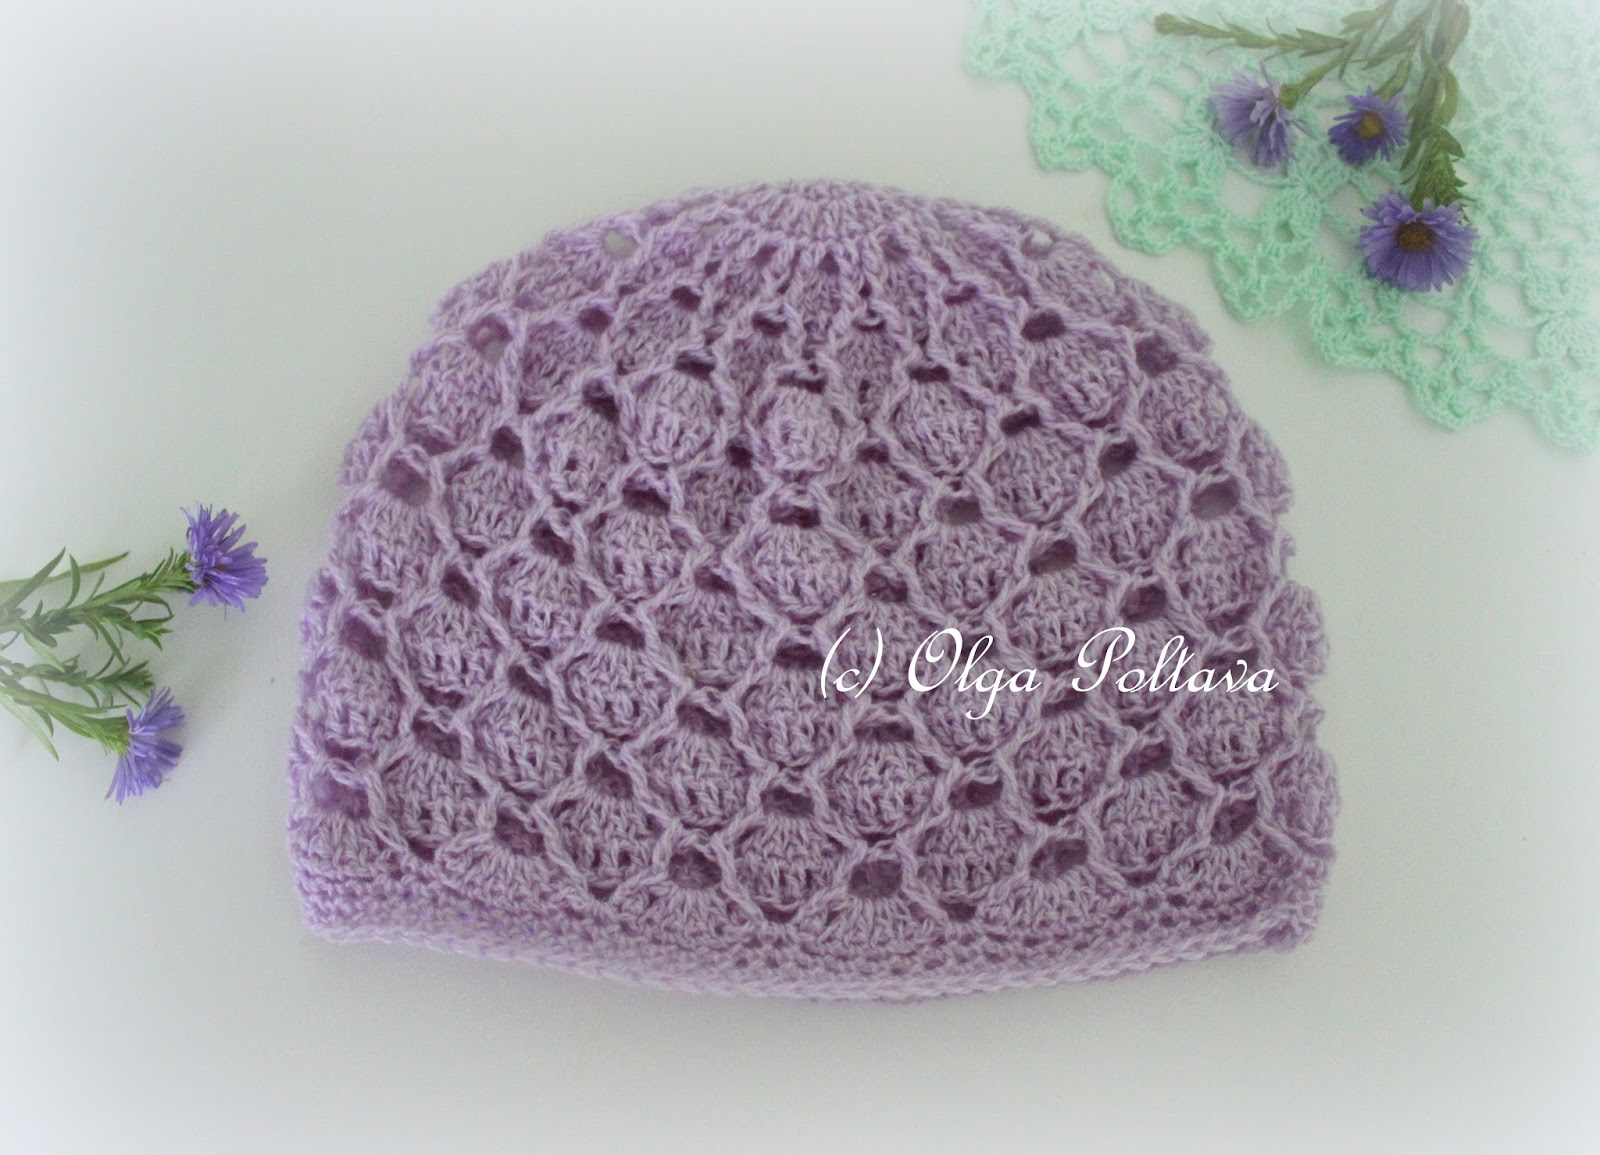 Free Patterns Crochet For Hats : Lacy Crochet: Delicate Lace Crochet Baby Hat, Free Pattern ...